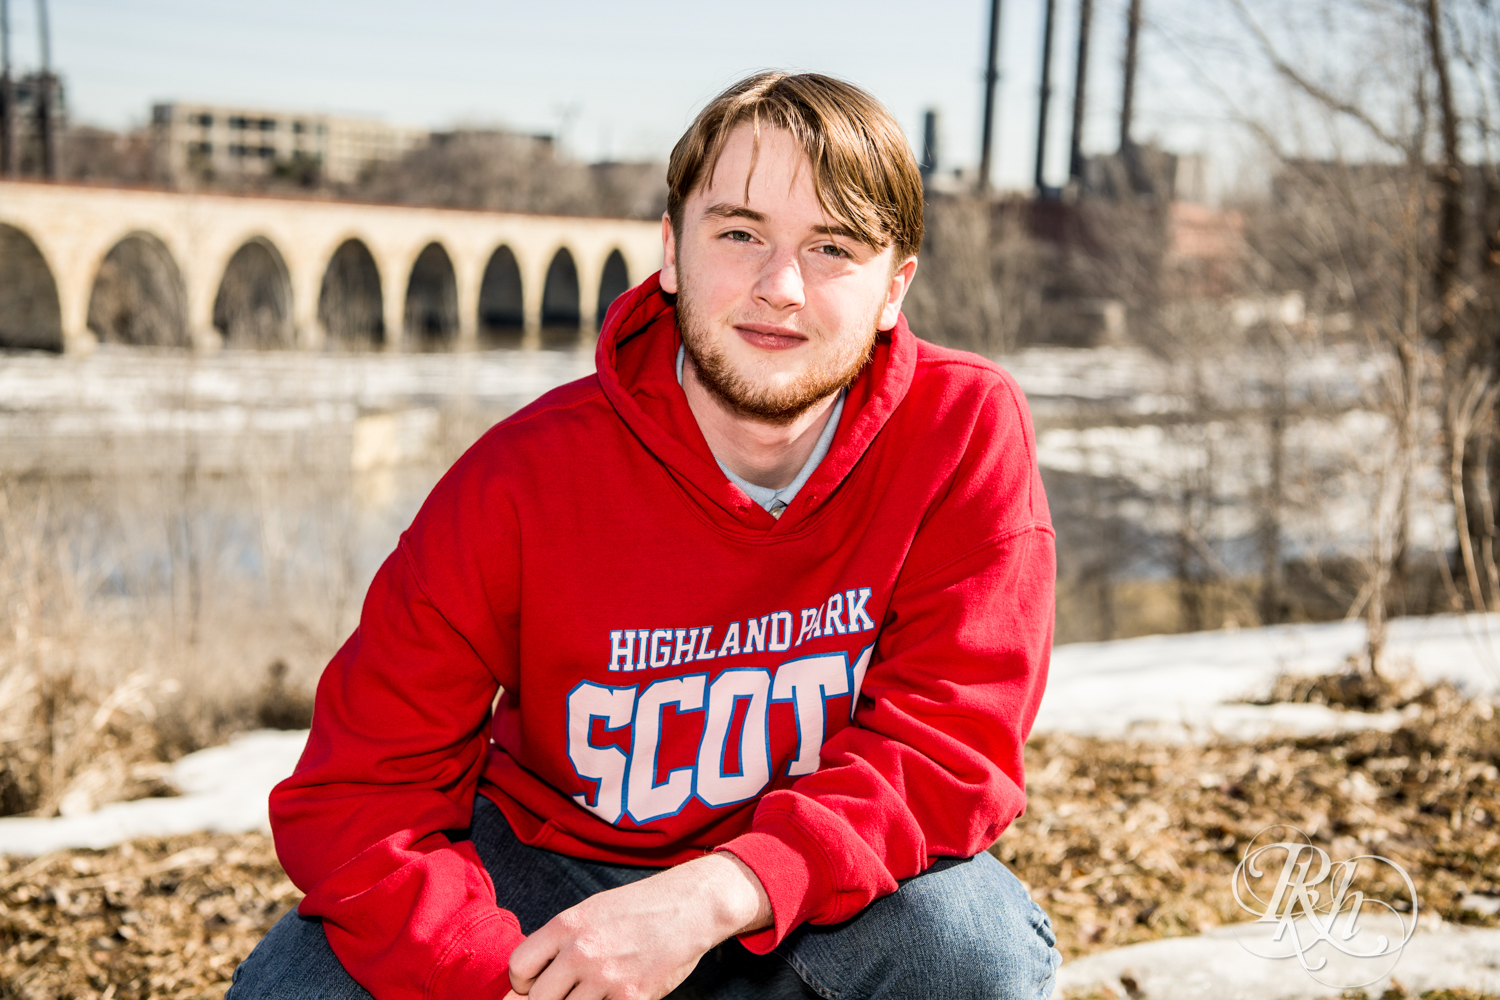 Kevin - Minnesota Senior Photography - Class of 2019 - Mill City Ruins -  RKH Images  (3 of 9).jpg